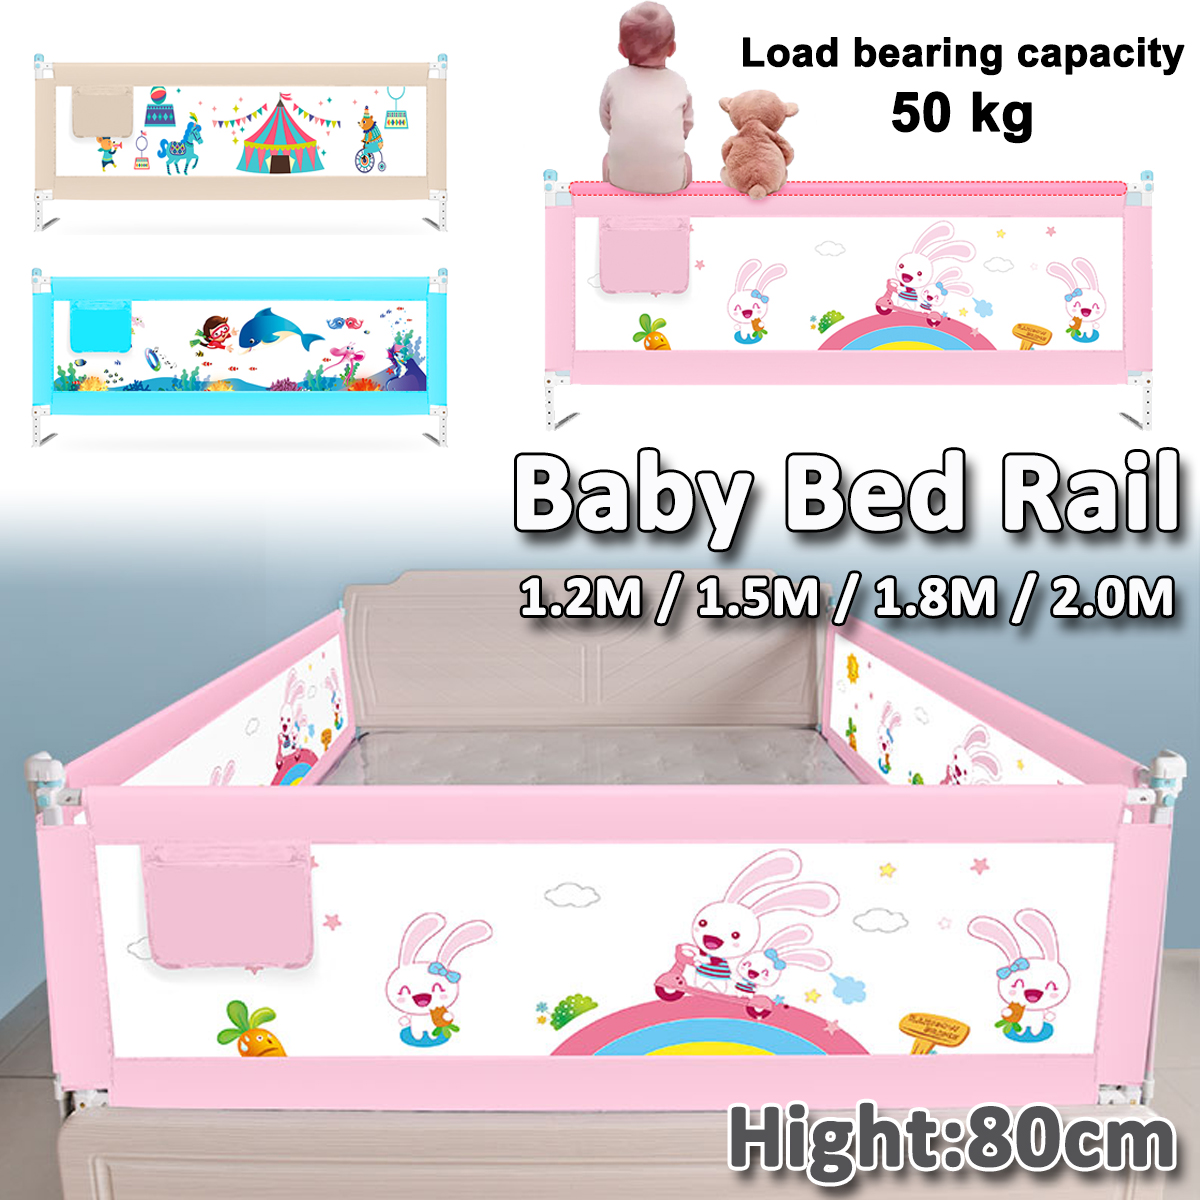 100cm wide White Safety Bed rail//BedRail Cot Guard Protection Child toddler Kids